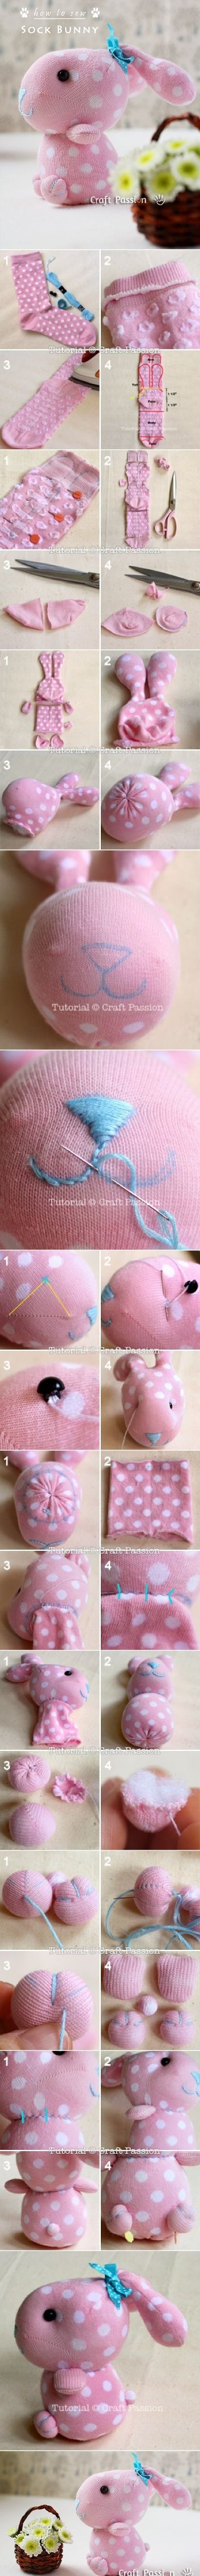 DIY Sock Bunny Sewing Tutorial